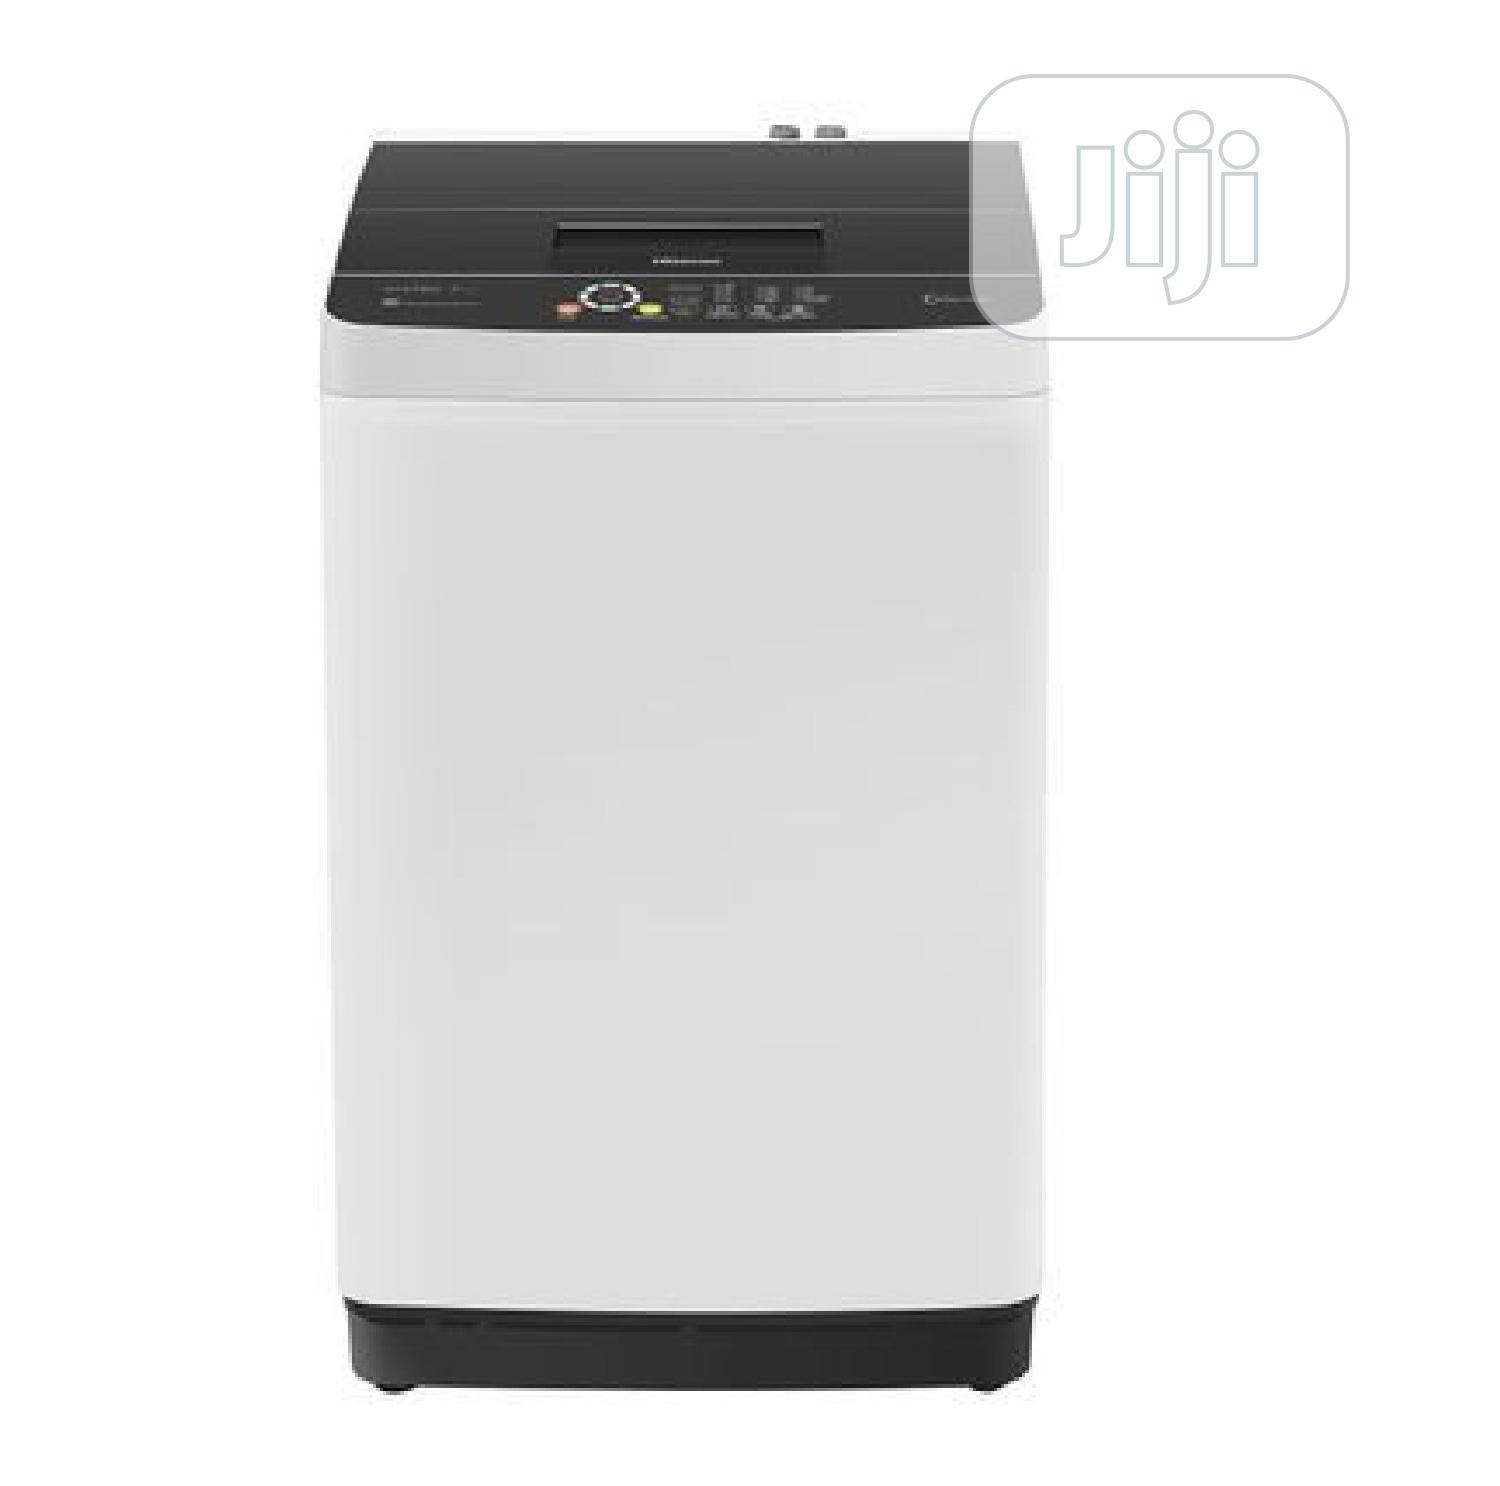 Hisense 8kg Automatic Top Load Smart Washing Machine WTS802 | Home Appliances for sale in Surulere, Lagos State, Nigeria